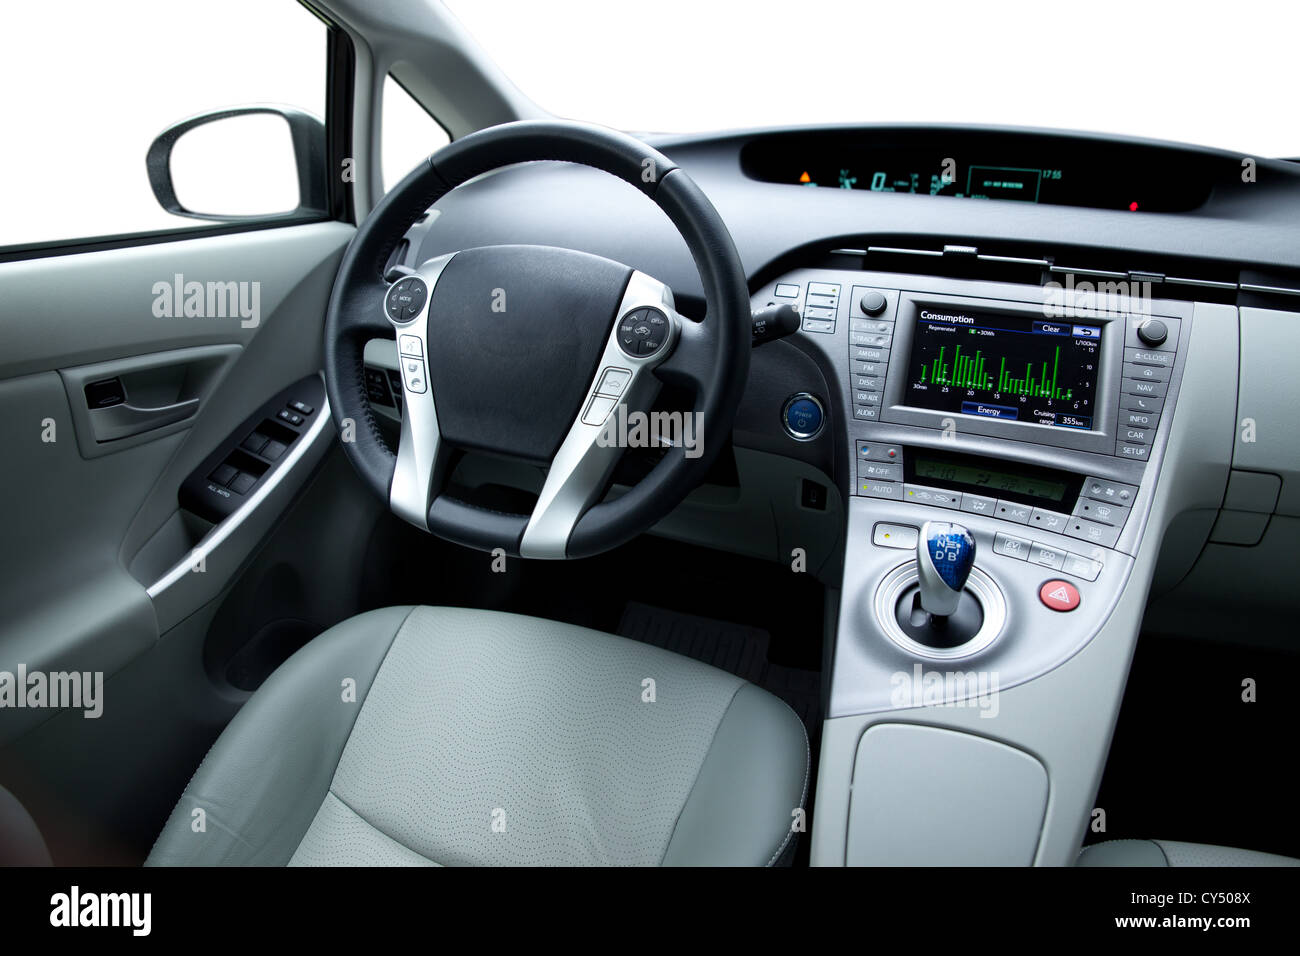 Modern car interior - leather seats and premium sound system. - Stock Image